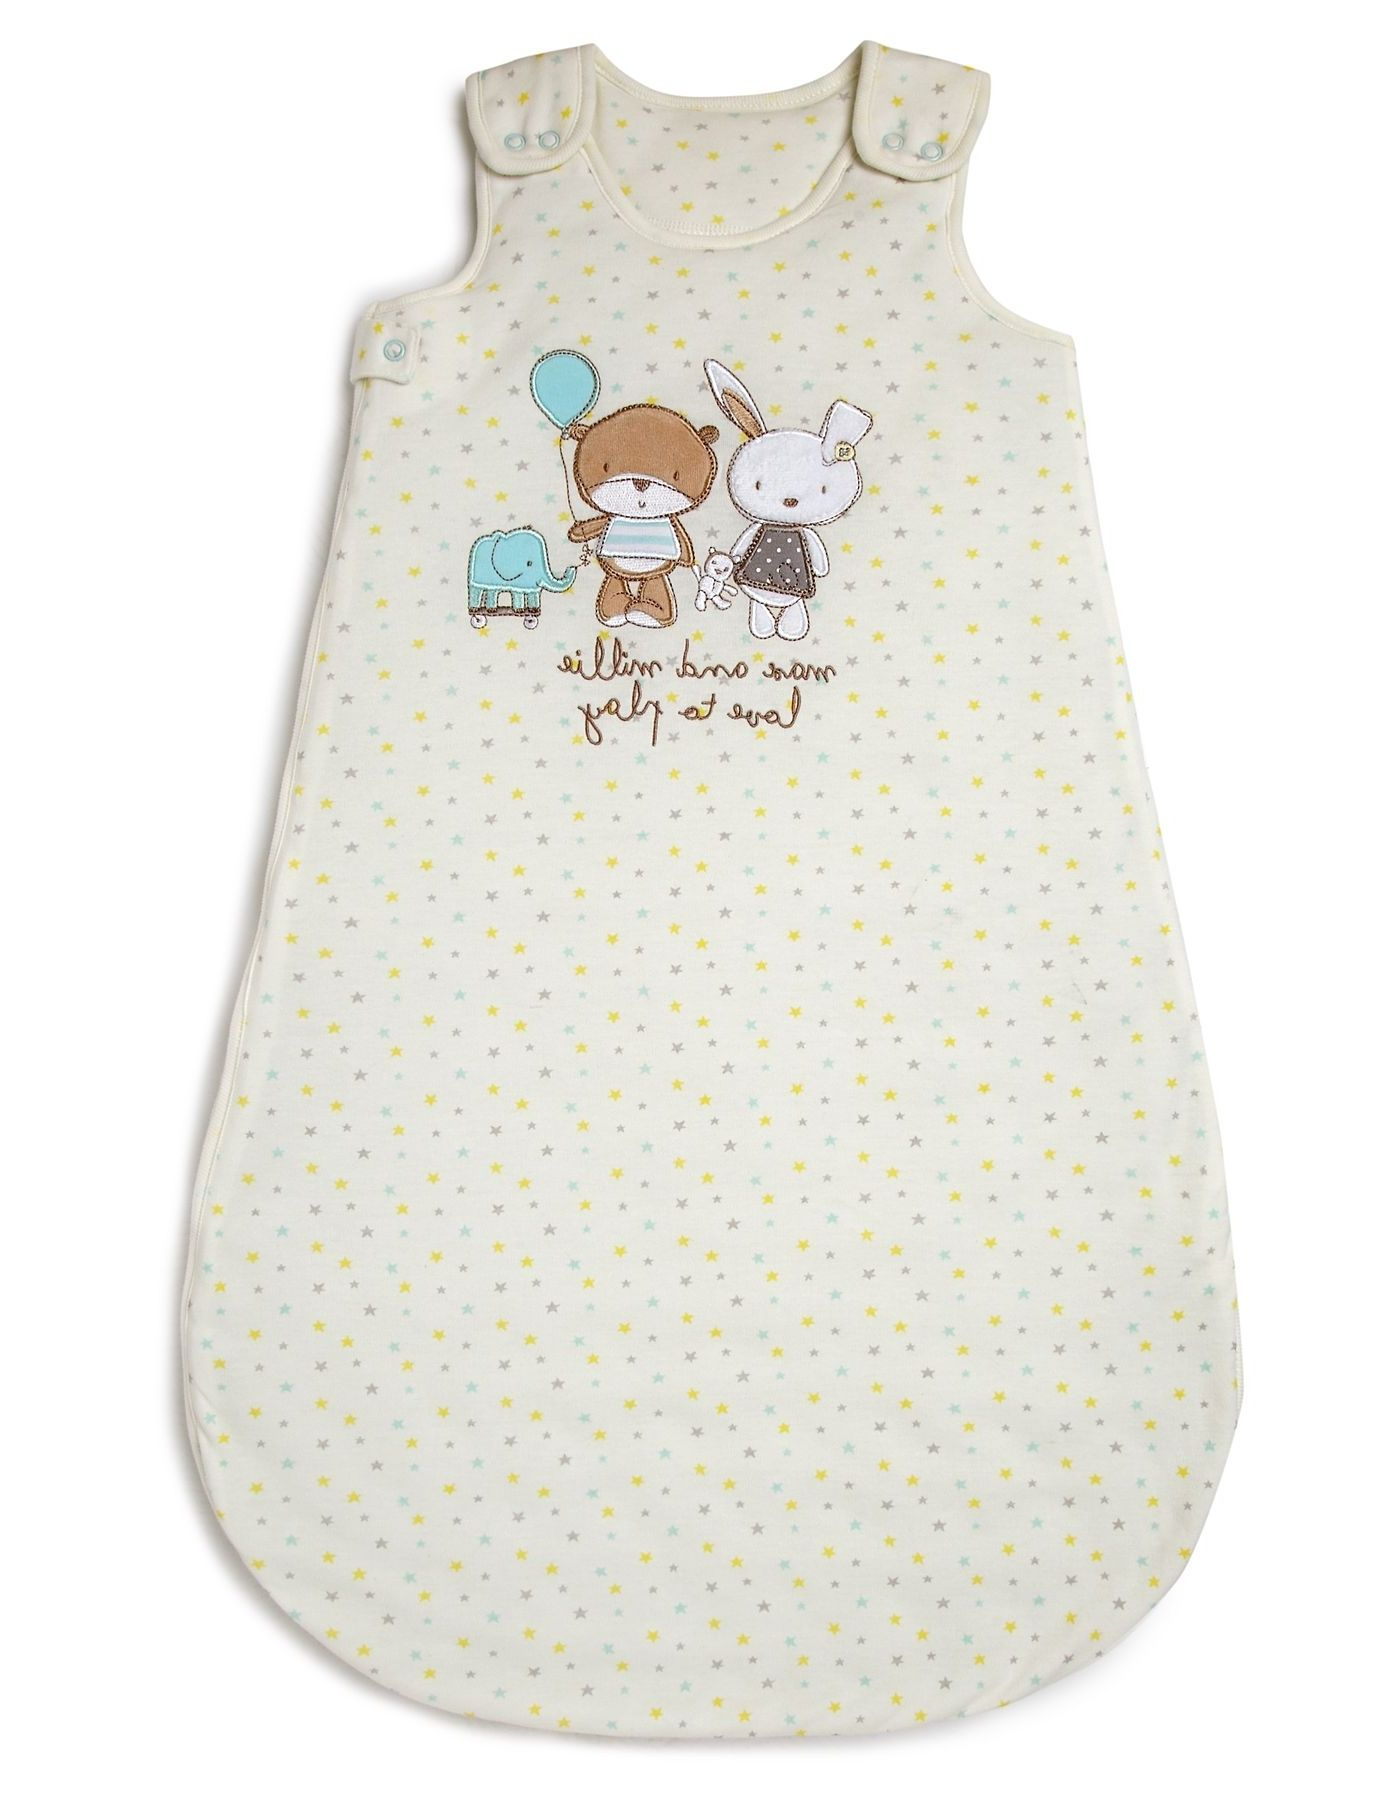 Asda Baby Sleeping Bag